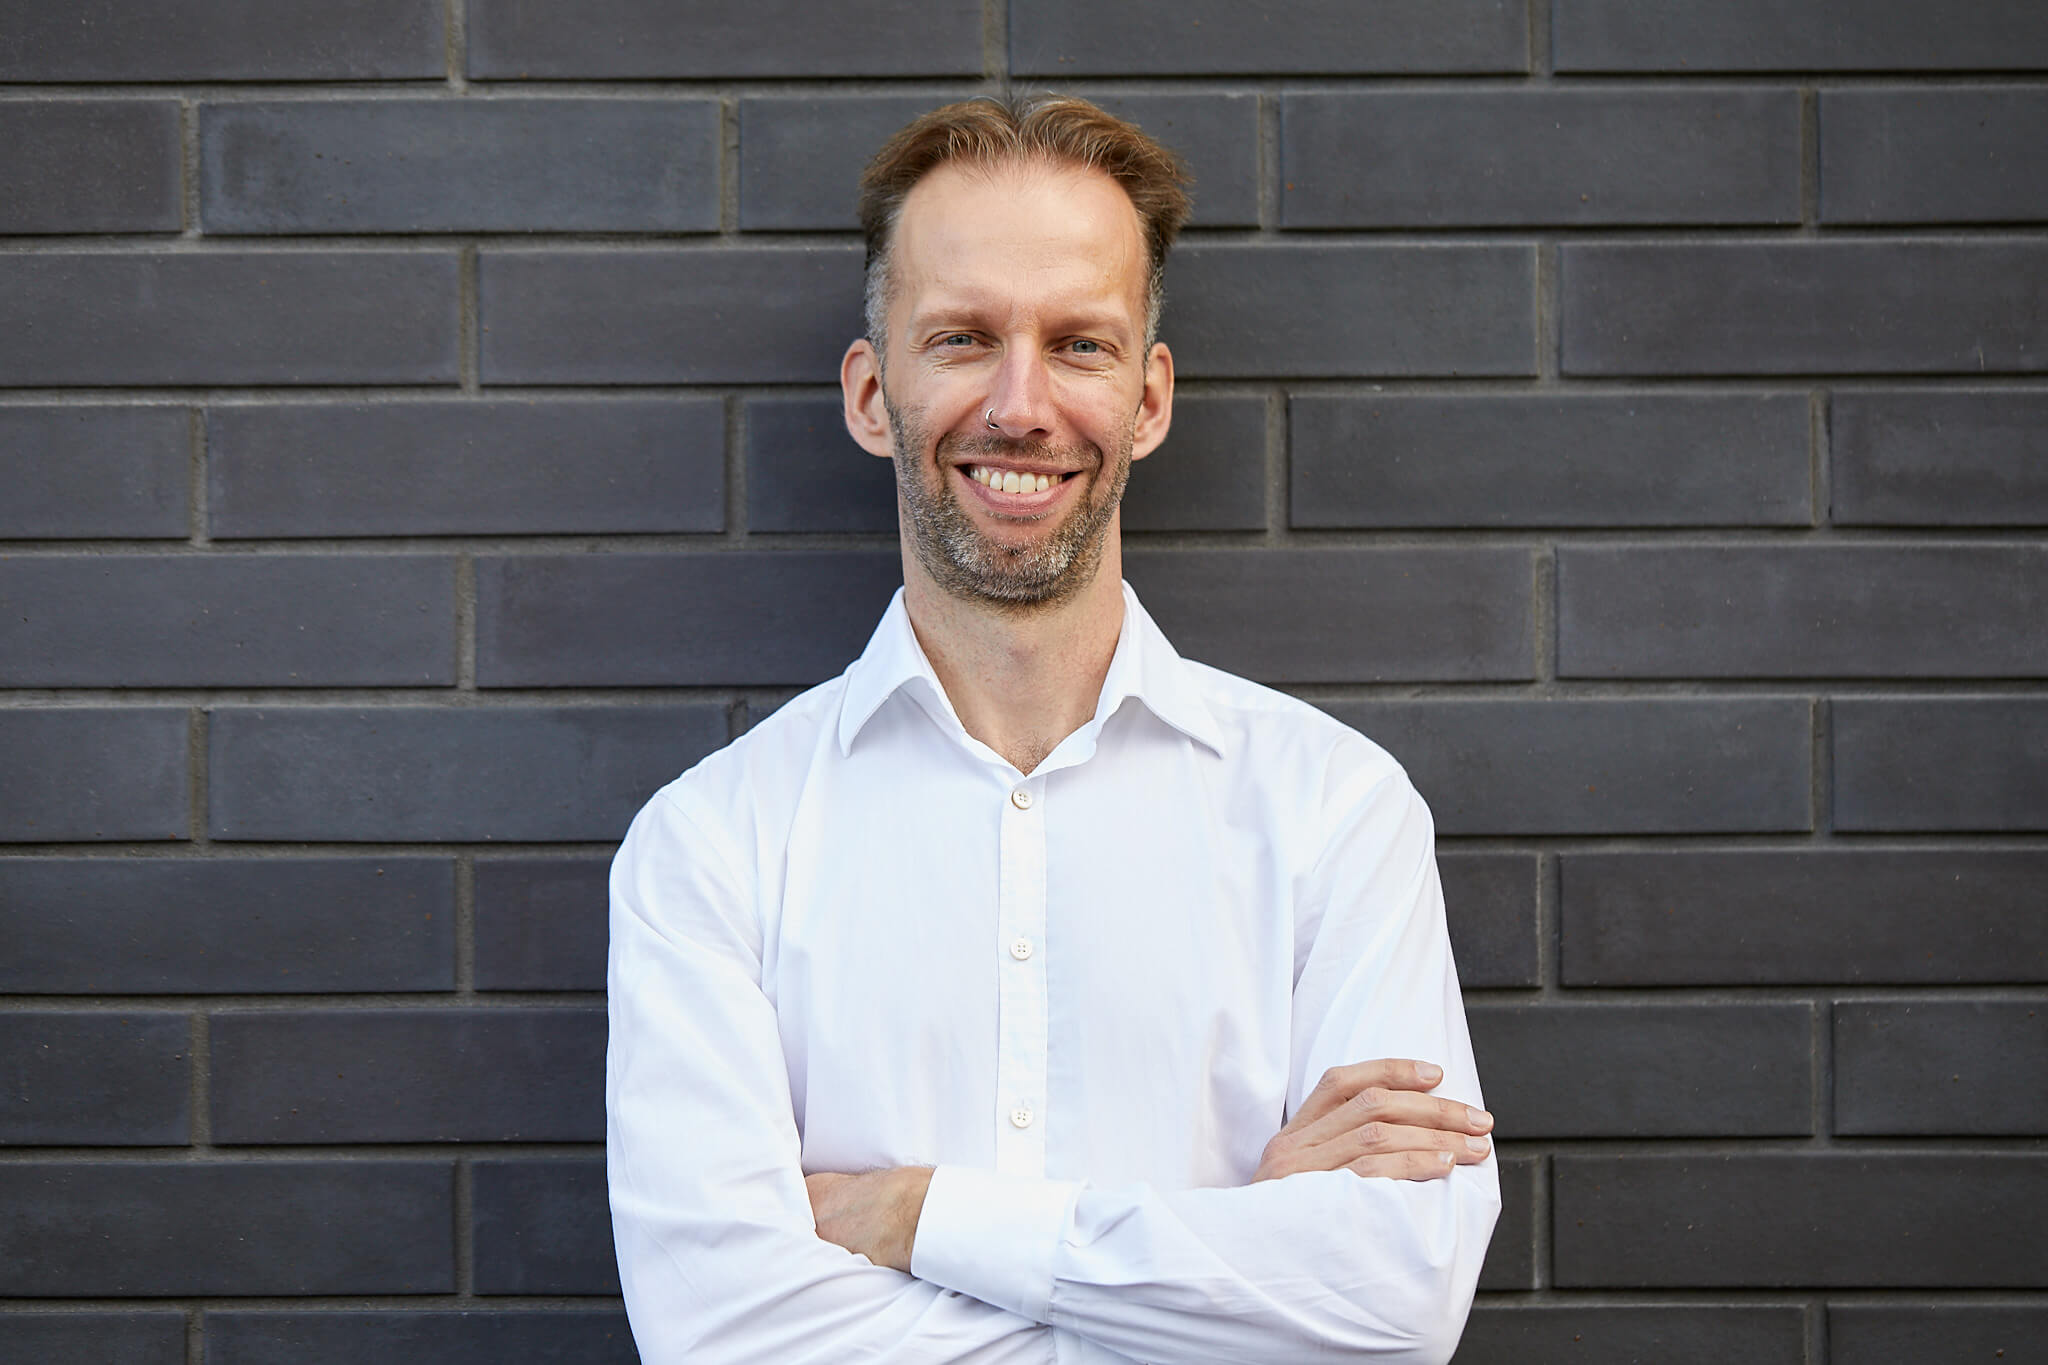 Meet Richard Boevé - Richard is a Blockchain Quality Specialist with a unique understanding of both the development and testing aspects of this cutting-edge technology.To position himself as the go-to testing consultant for the growing number of blockchain initiatives globally, and to help facilitate the start of a location-independent career, Richard wanted support in clarifying his unique value proposition and creating a website that would showcase his specialist skills to visitors.